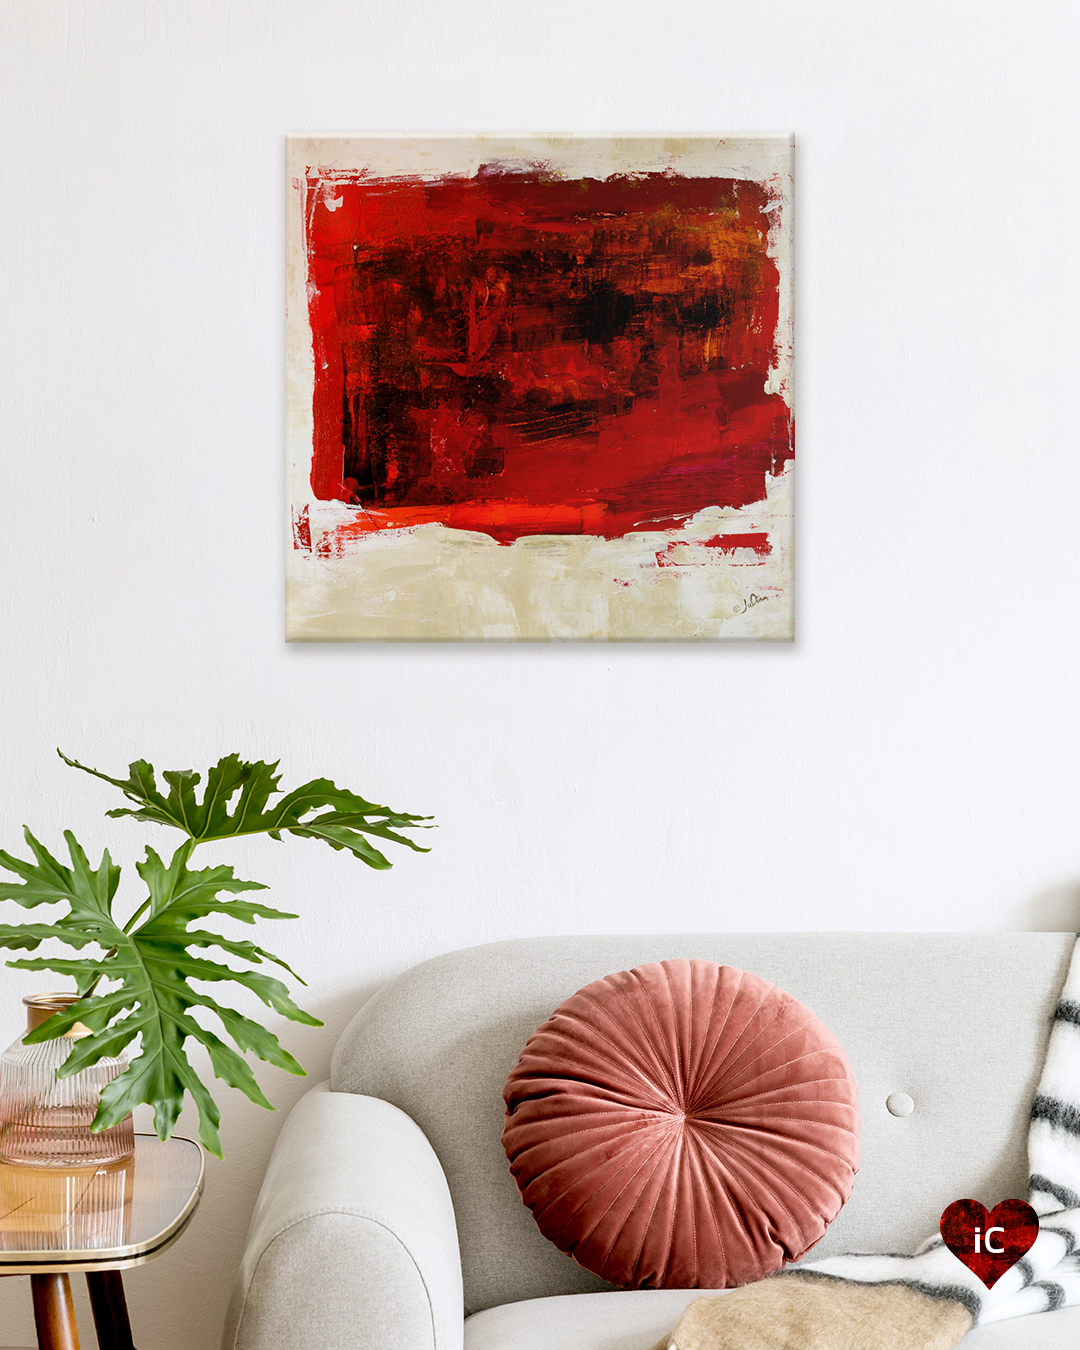 Abstract image of red square on beige background hanging on wall in modern living room